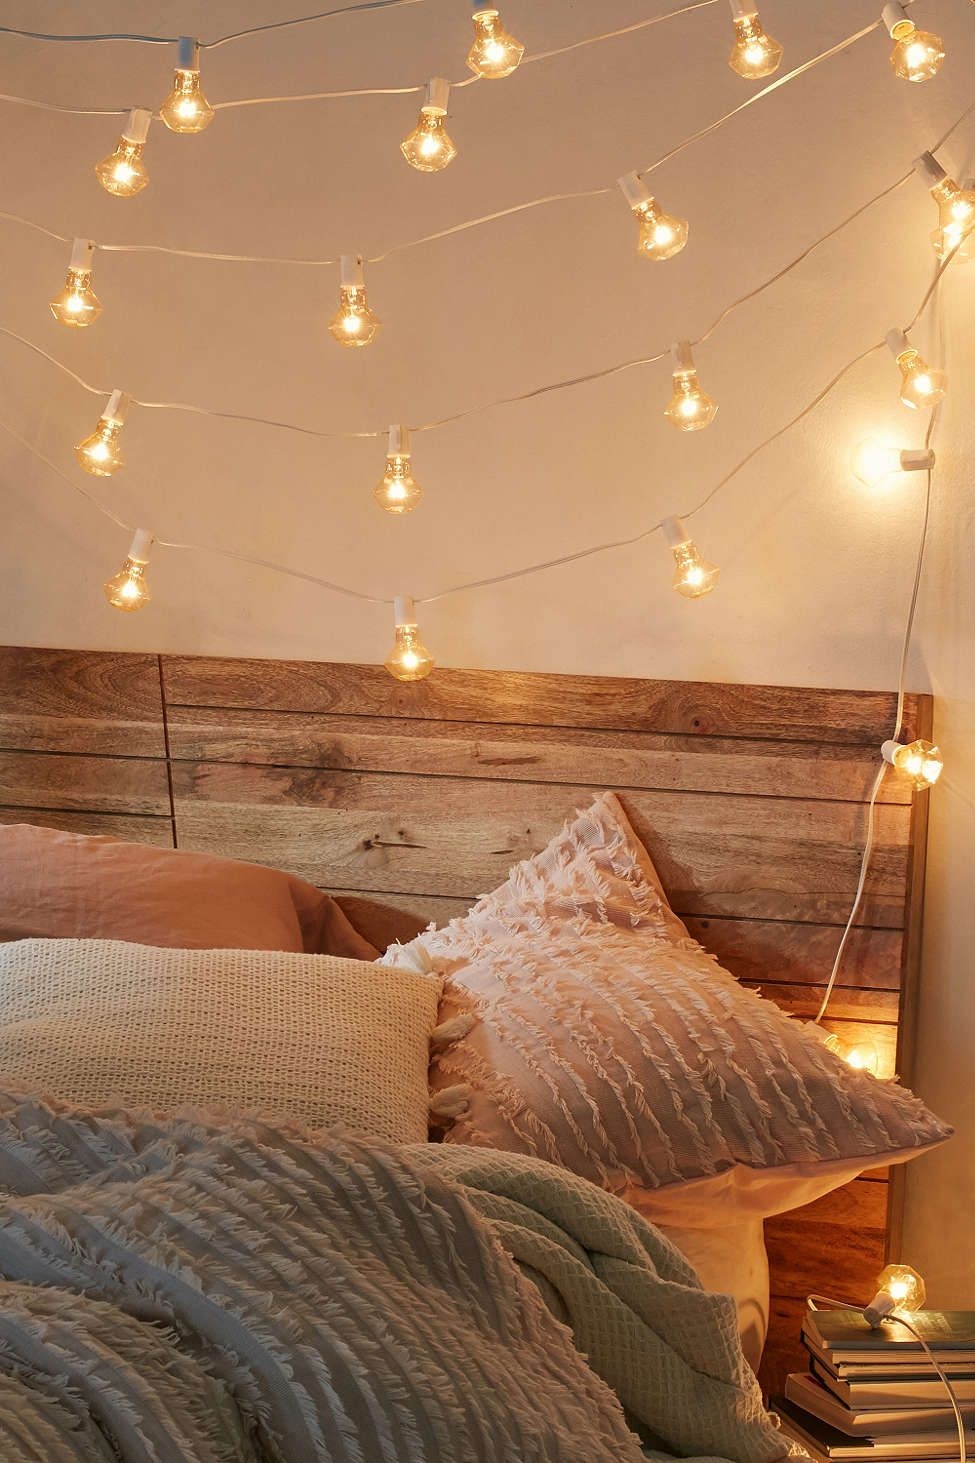 faceted bulb string lights cave ideas room decor bedroom lighting dorm walls. Black Bedroom Furniture Sets. Home Design Ideas